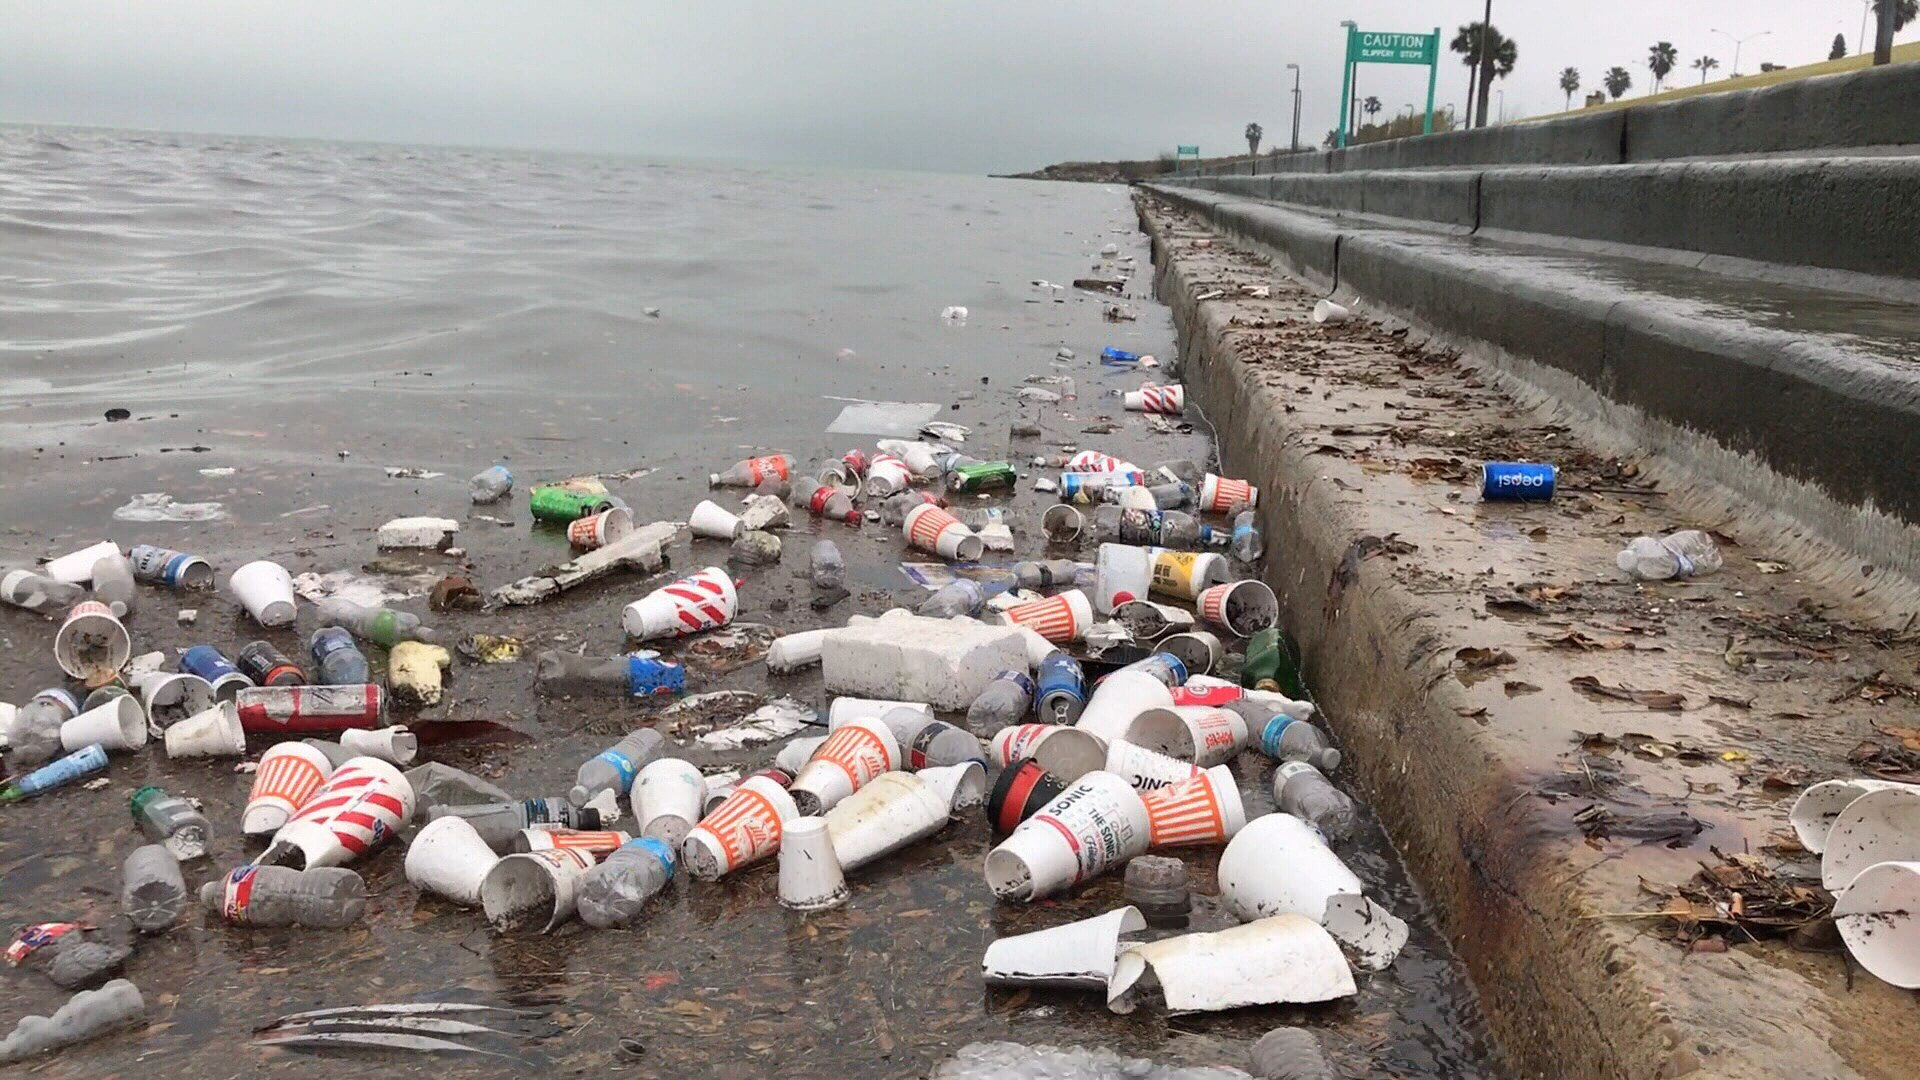 Trash that flowed into the bay through the storm water drains.